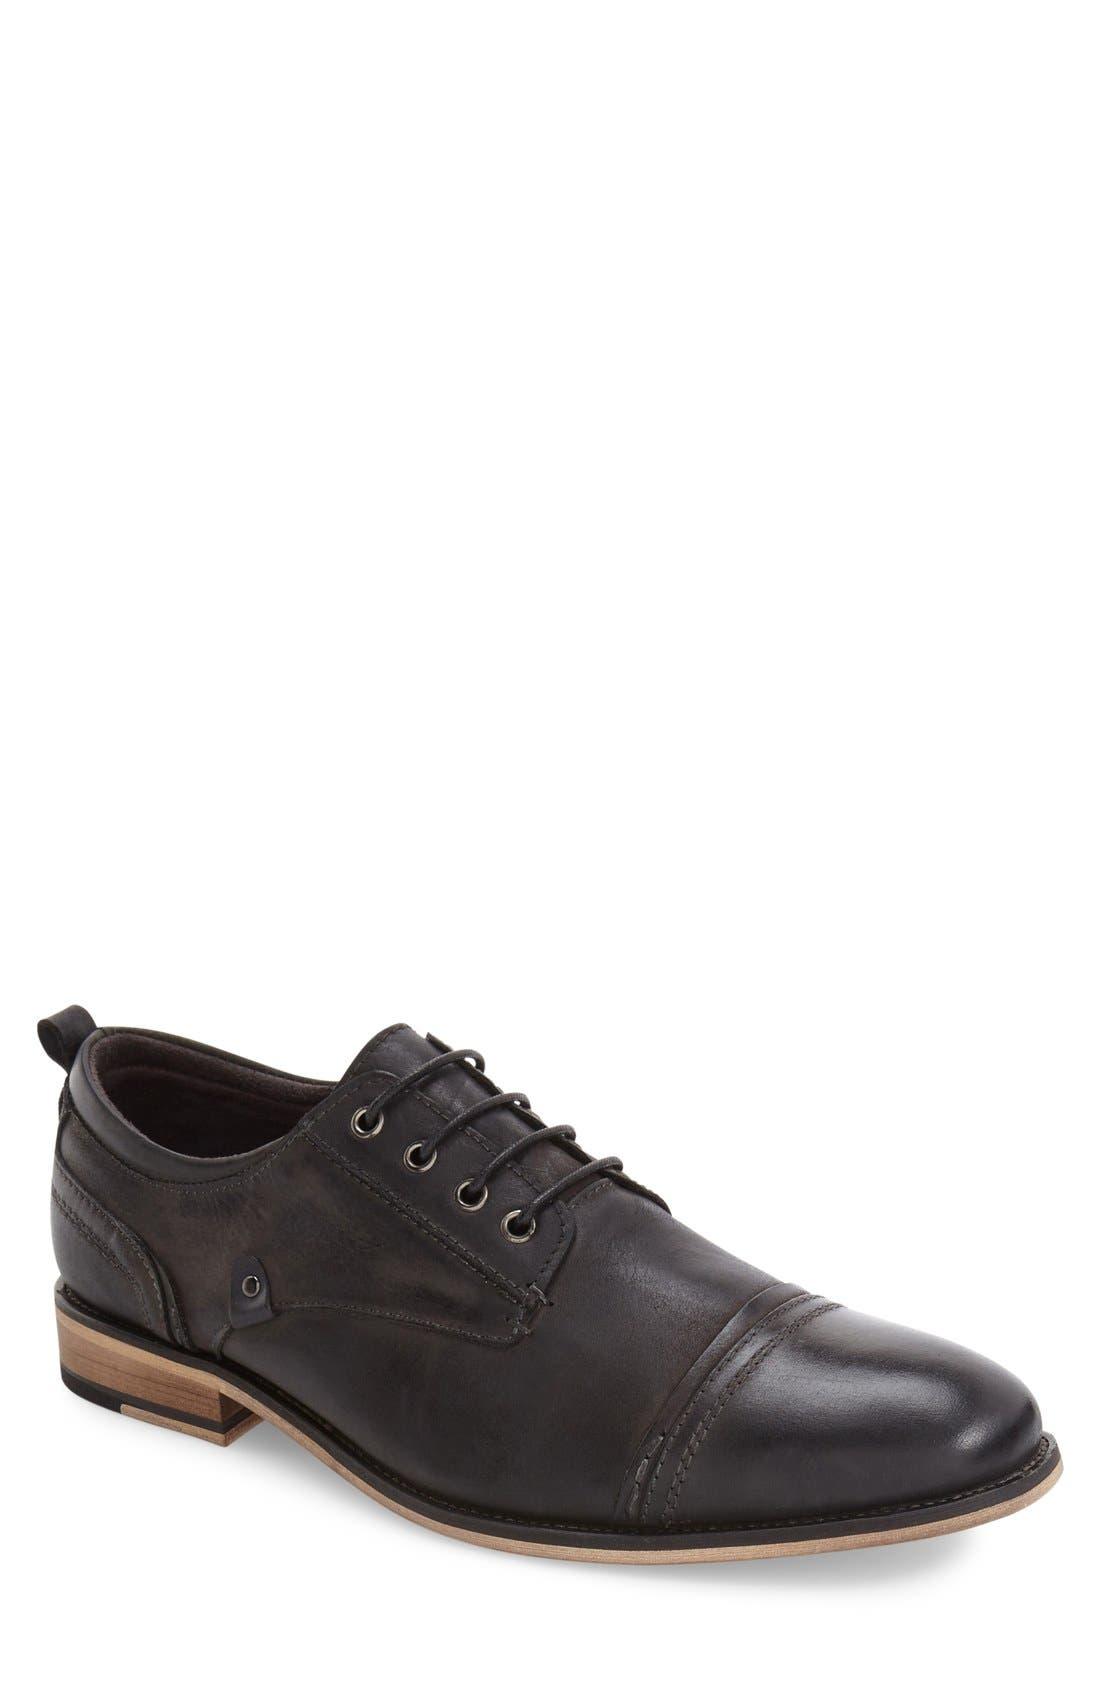 Alternate Image 1 Selected - Steve Madden Jamyson Cap Toe Derby (Men)